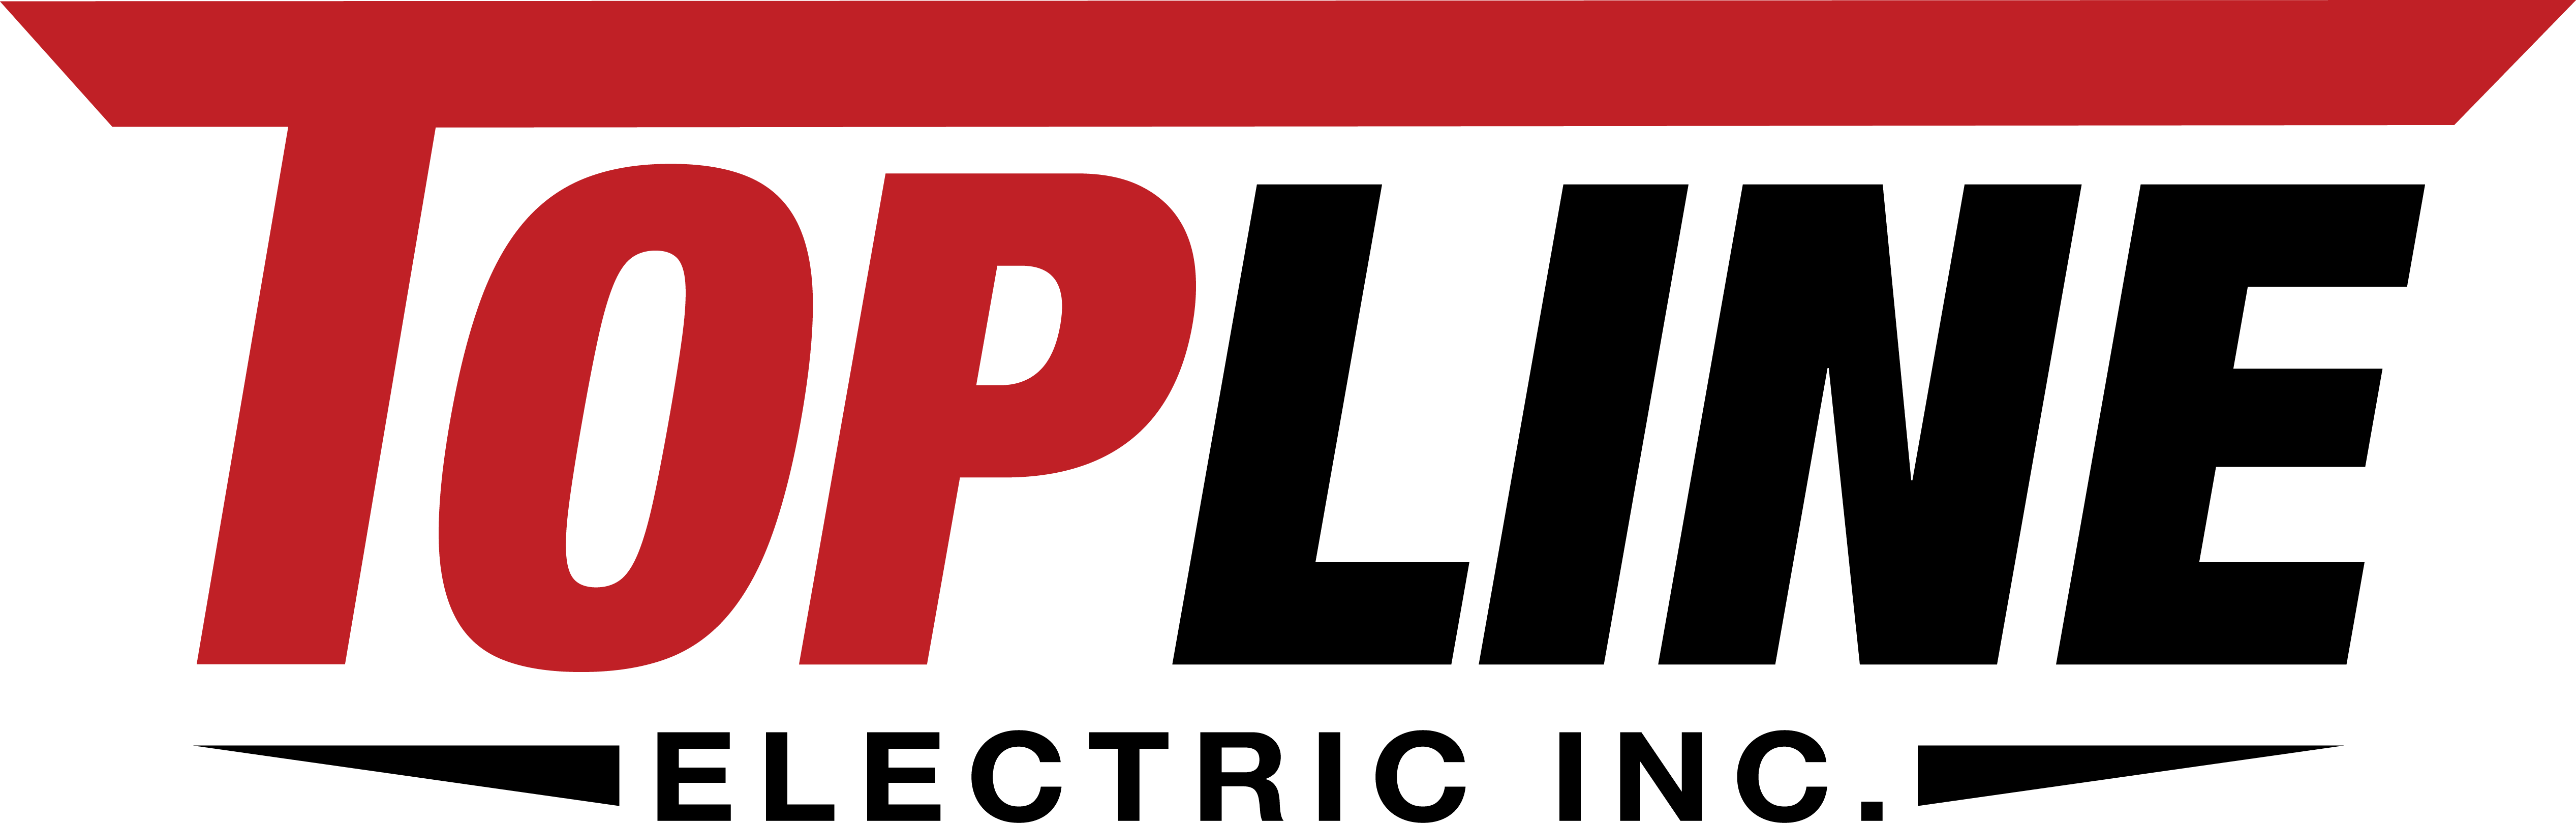 Top Line Electric Inc.